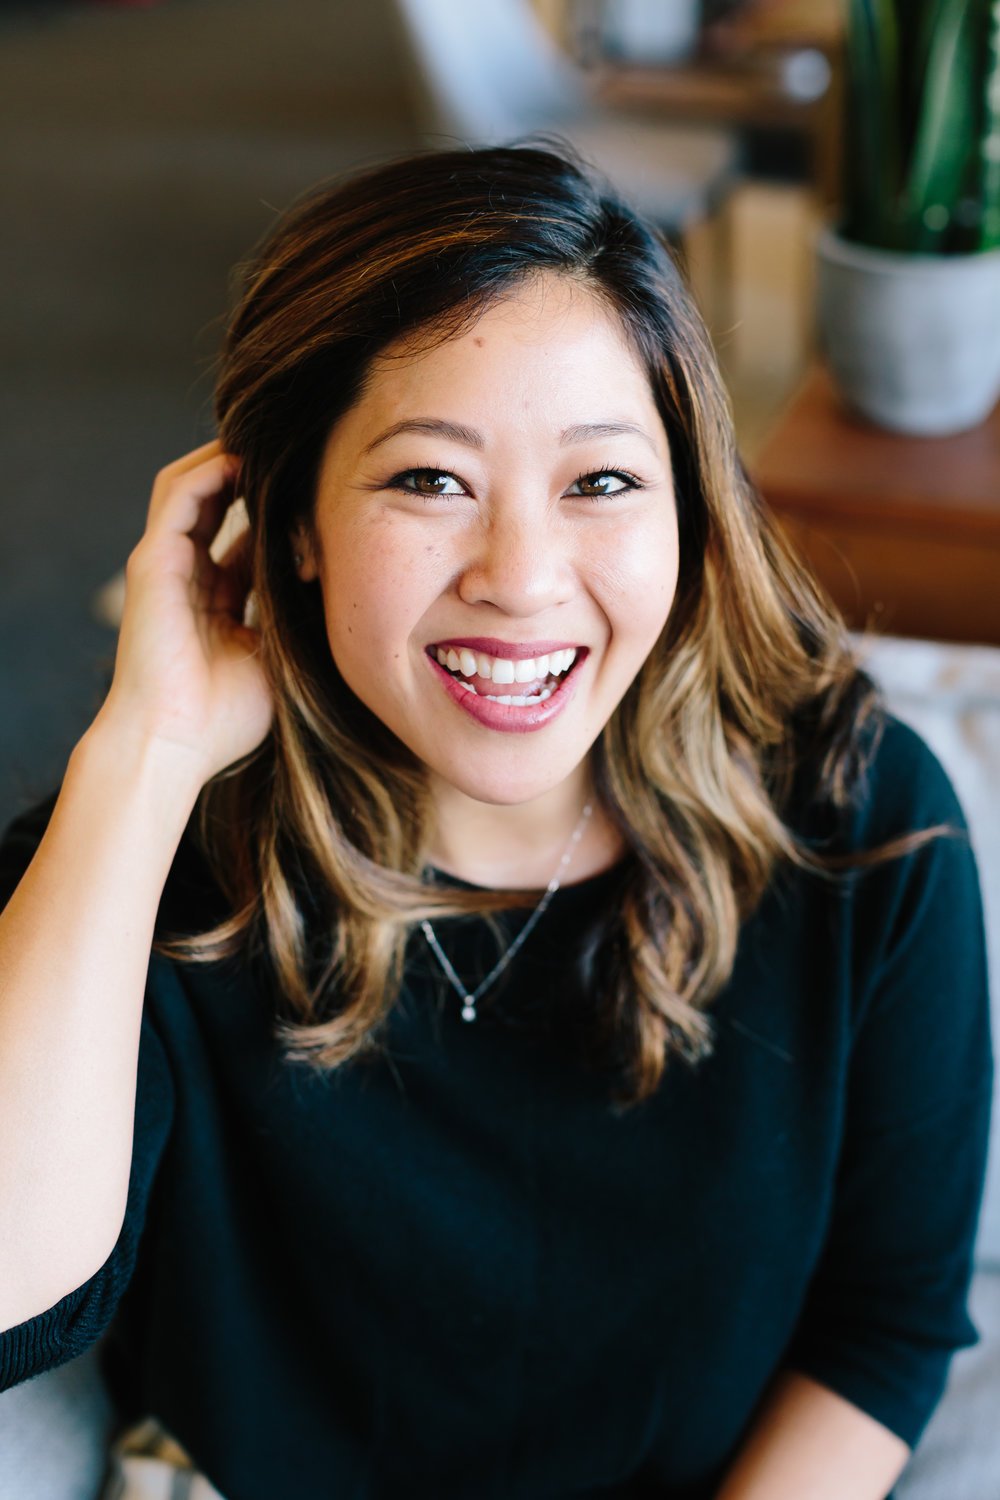 Leslie Wong, Founder, Burgundy Fox Inclusivity in Your Wedding Business Small Talk | Tuesday 3:30pm Follow Burgundy Fox @burgundyfoxco Leslie Wong is the founder of Burgundy Fox, a subscription lingerie brand on a mission to celebrate all bodies and empower women to love themselves. She experienced first-hand how awkward and unenjoyable lingerie shopping could be, and discovered that it was fraught with barriers for regular women: size, price and style. Burgundy Fox was launched to remove those barriers and to celebrate women, mind and body. Leslie has 10 years of marketing and partnership experience, serves as an advisor to HoneyBook and Rising Tide Society's Creative Council and spends her free time practicing yoga, listening to podcasts and enjoying good food.